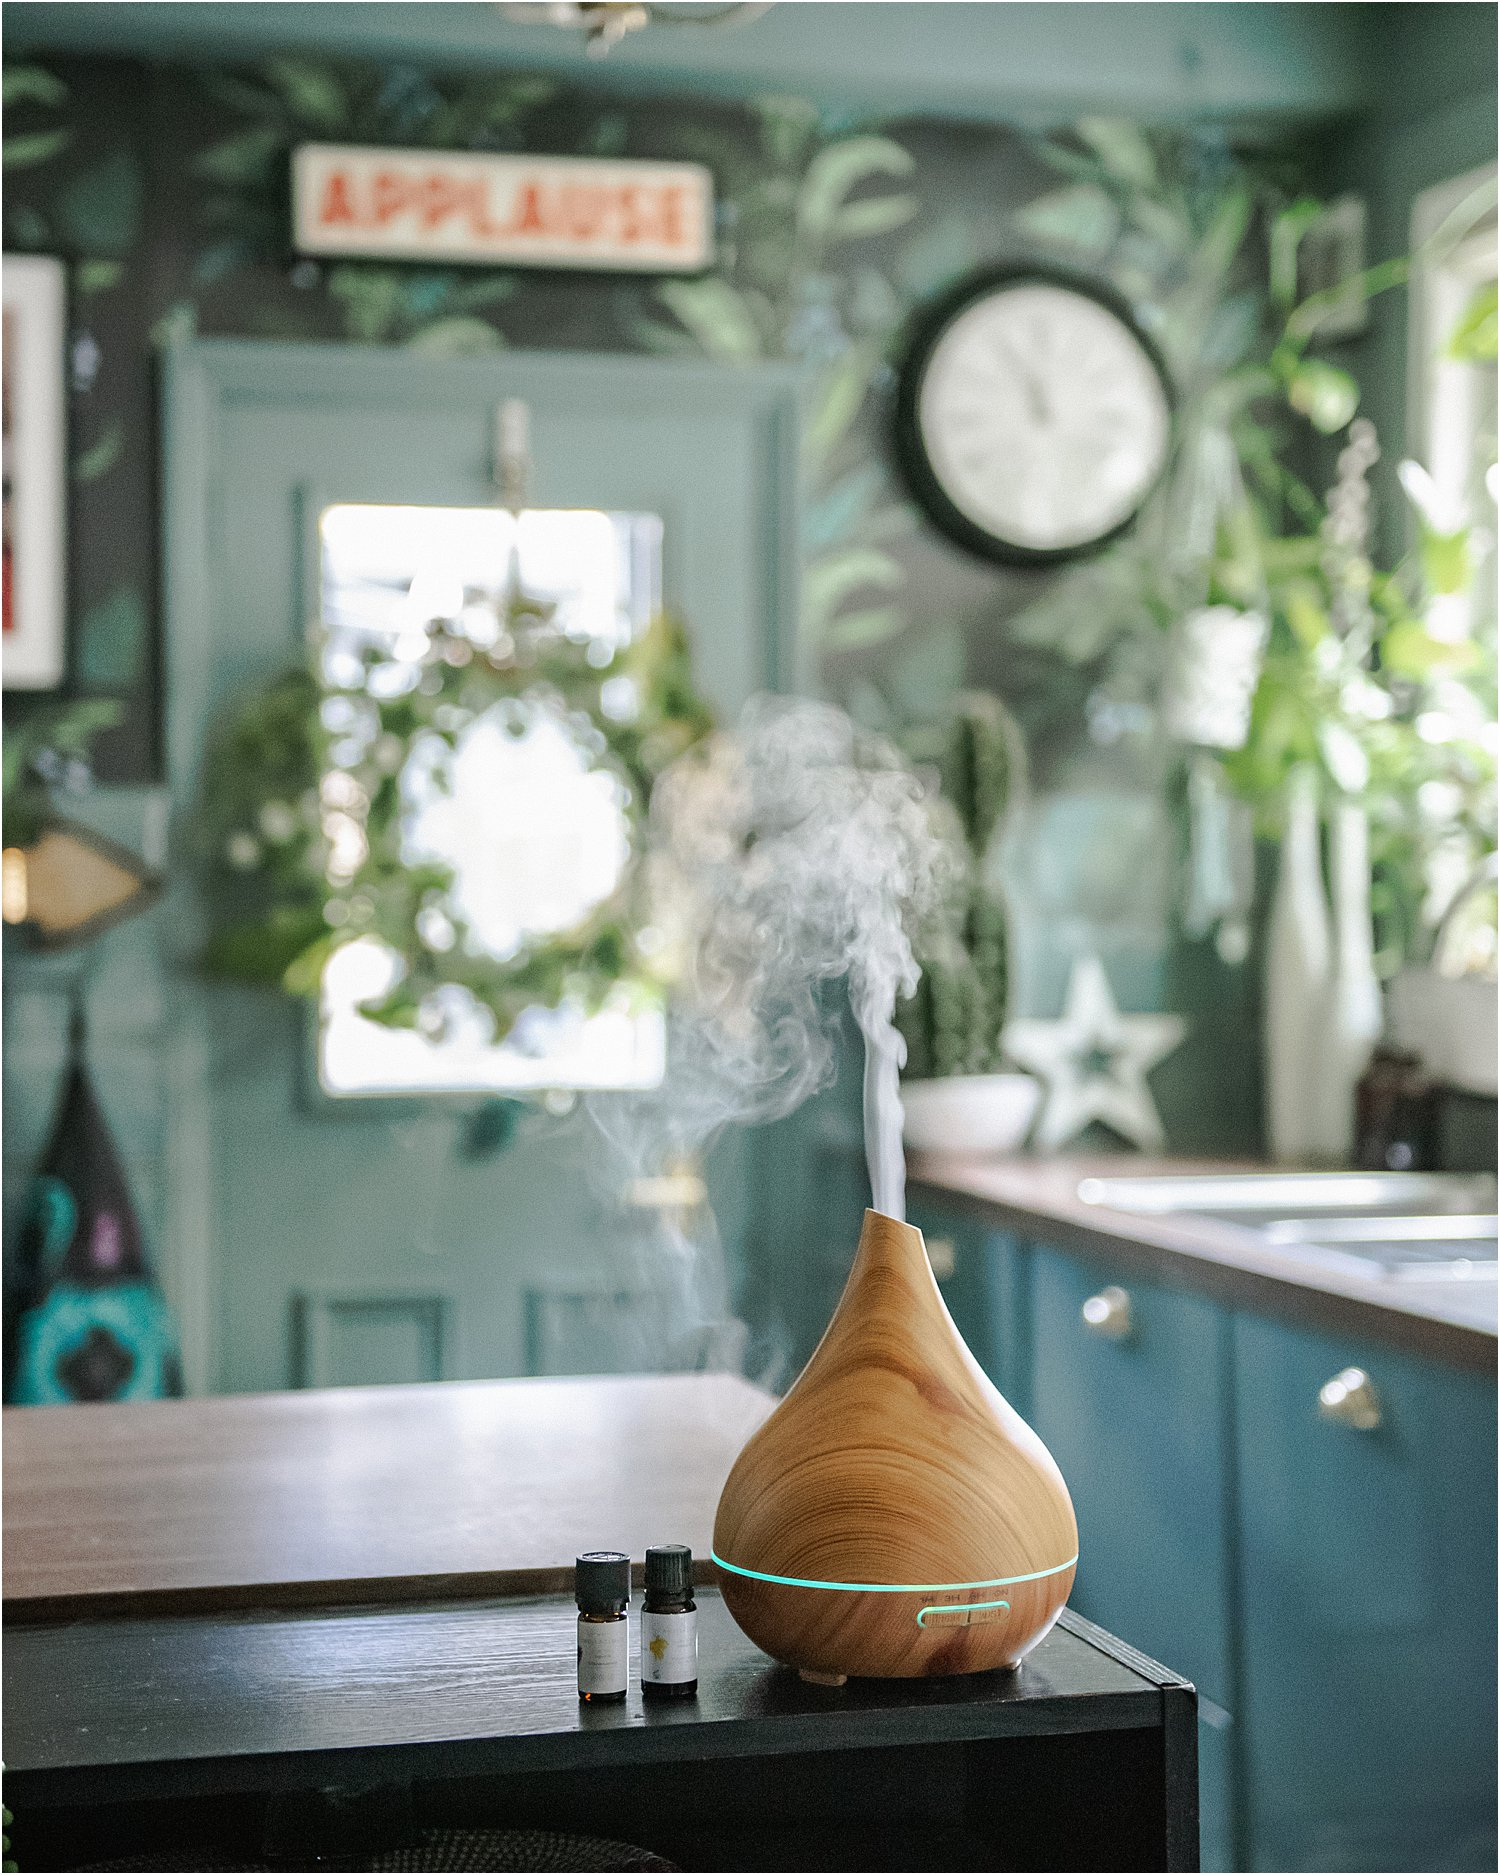 3-powerful-ways-to-bring-nature-indoors-smellacloud-diffuser-essential-oil